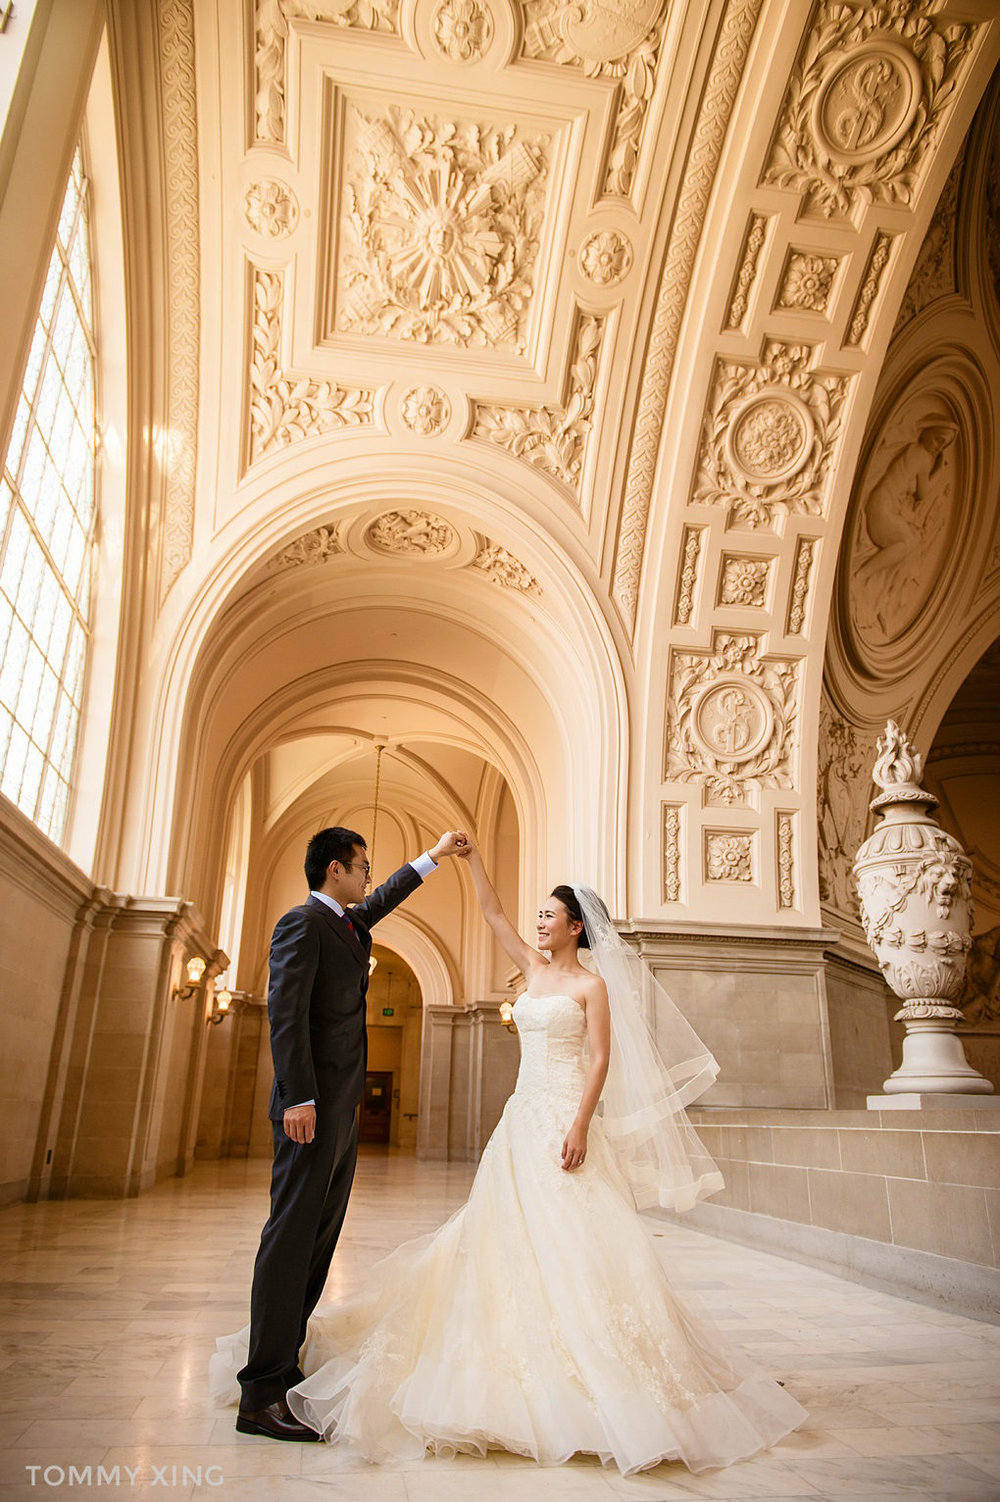 San Francisco per-wedding 旧金山婚纱照 by Tommy Xing Photography 12.jpg